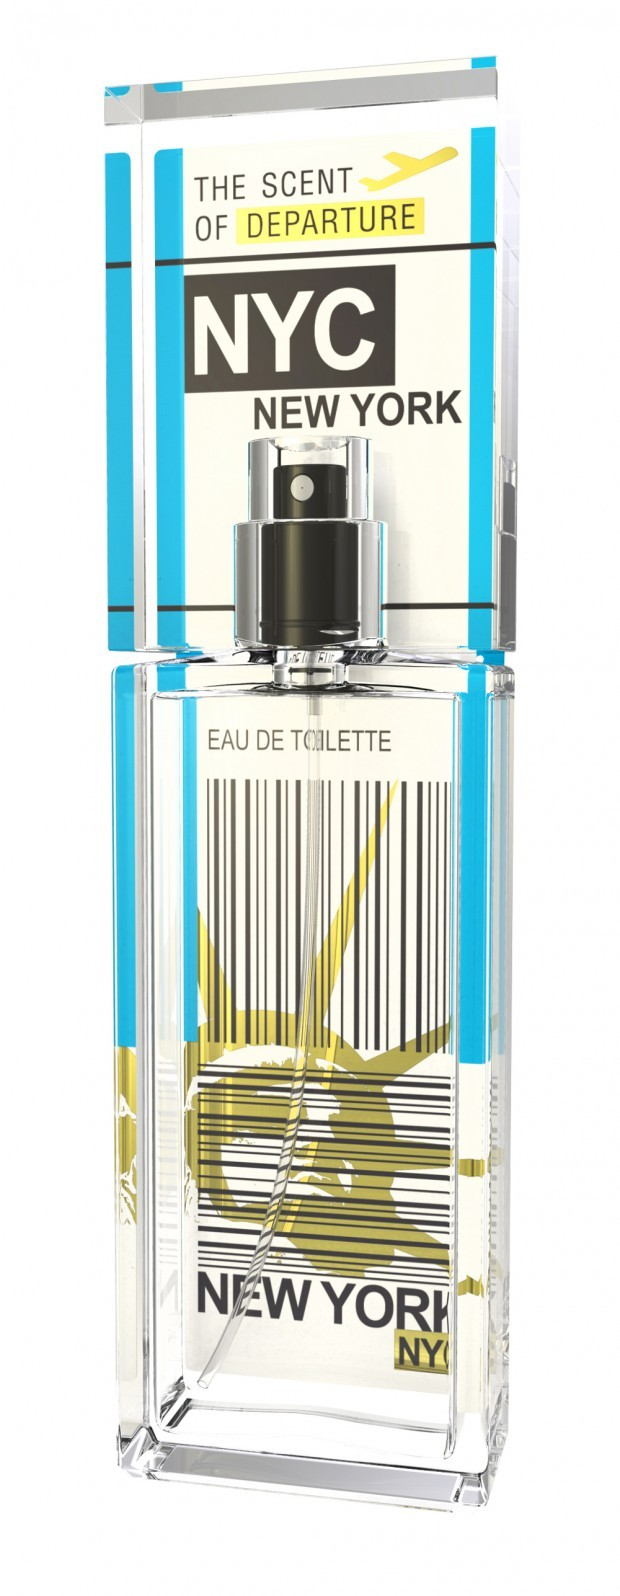 NEW YORK CITY by SCENT of DEPARTURE 5ml Travel Spray NYC LOTUS CARAMEL Perfume